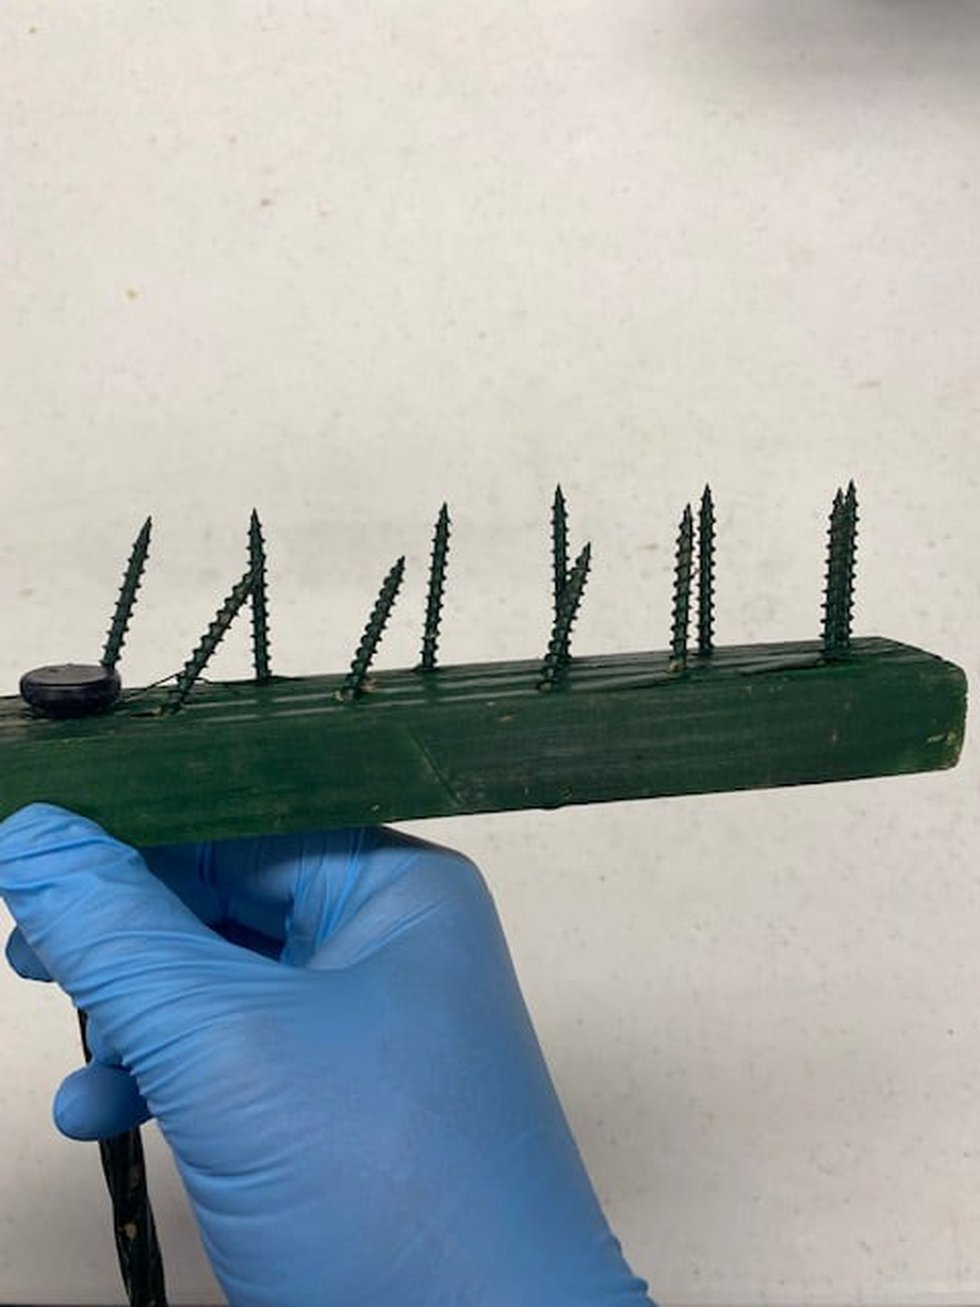 Police say homemade spiked boards have been found at least three times on different...